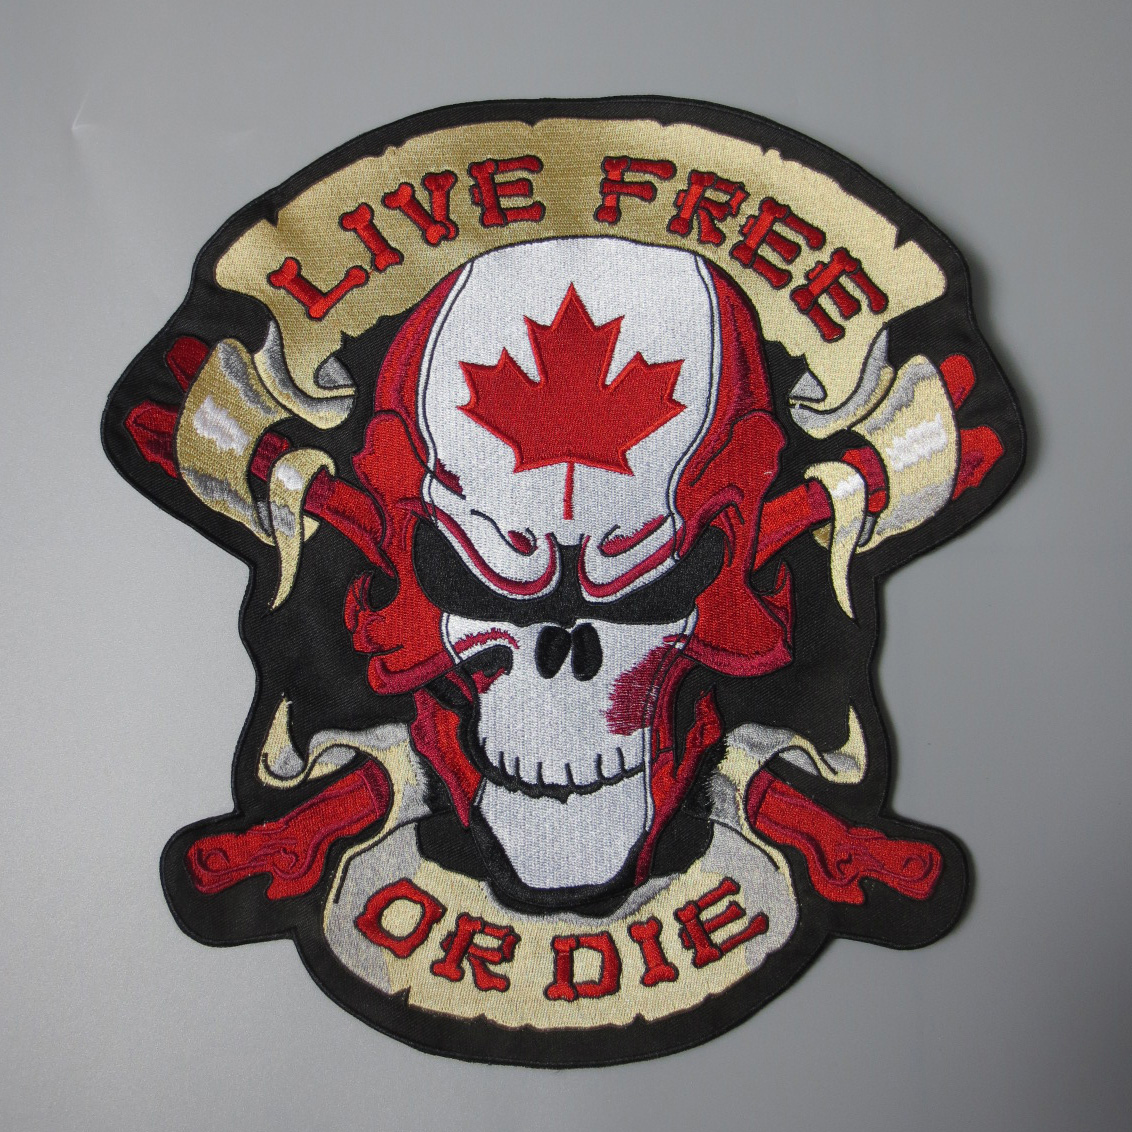 12 inches large Embroidery Patches for Jacket Back Vest Motorcycle Biker Sew on CANADA Maple Leaf Skull LIVE FREE OR DIE Brown Patches    - AliExpress